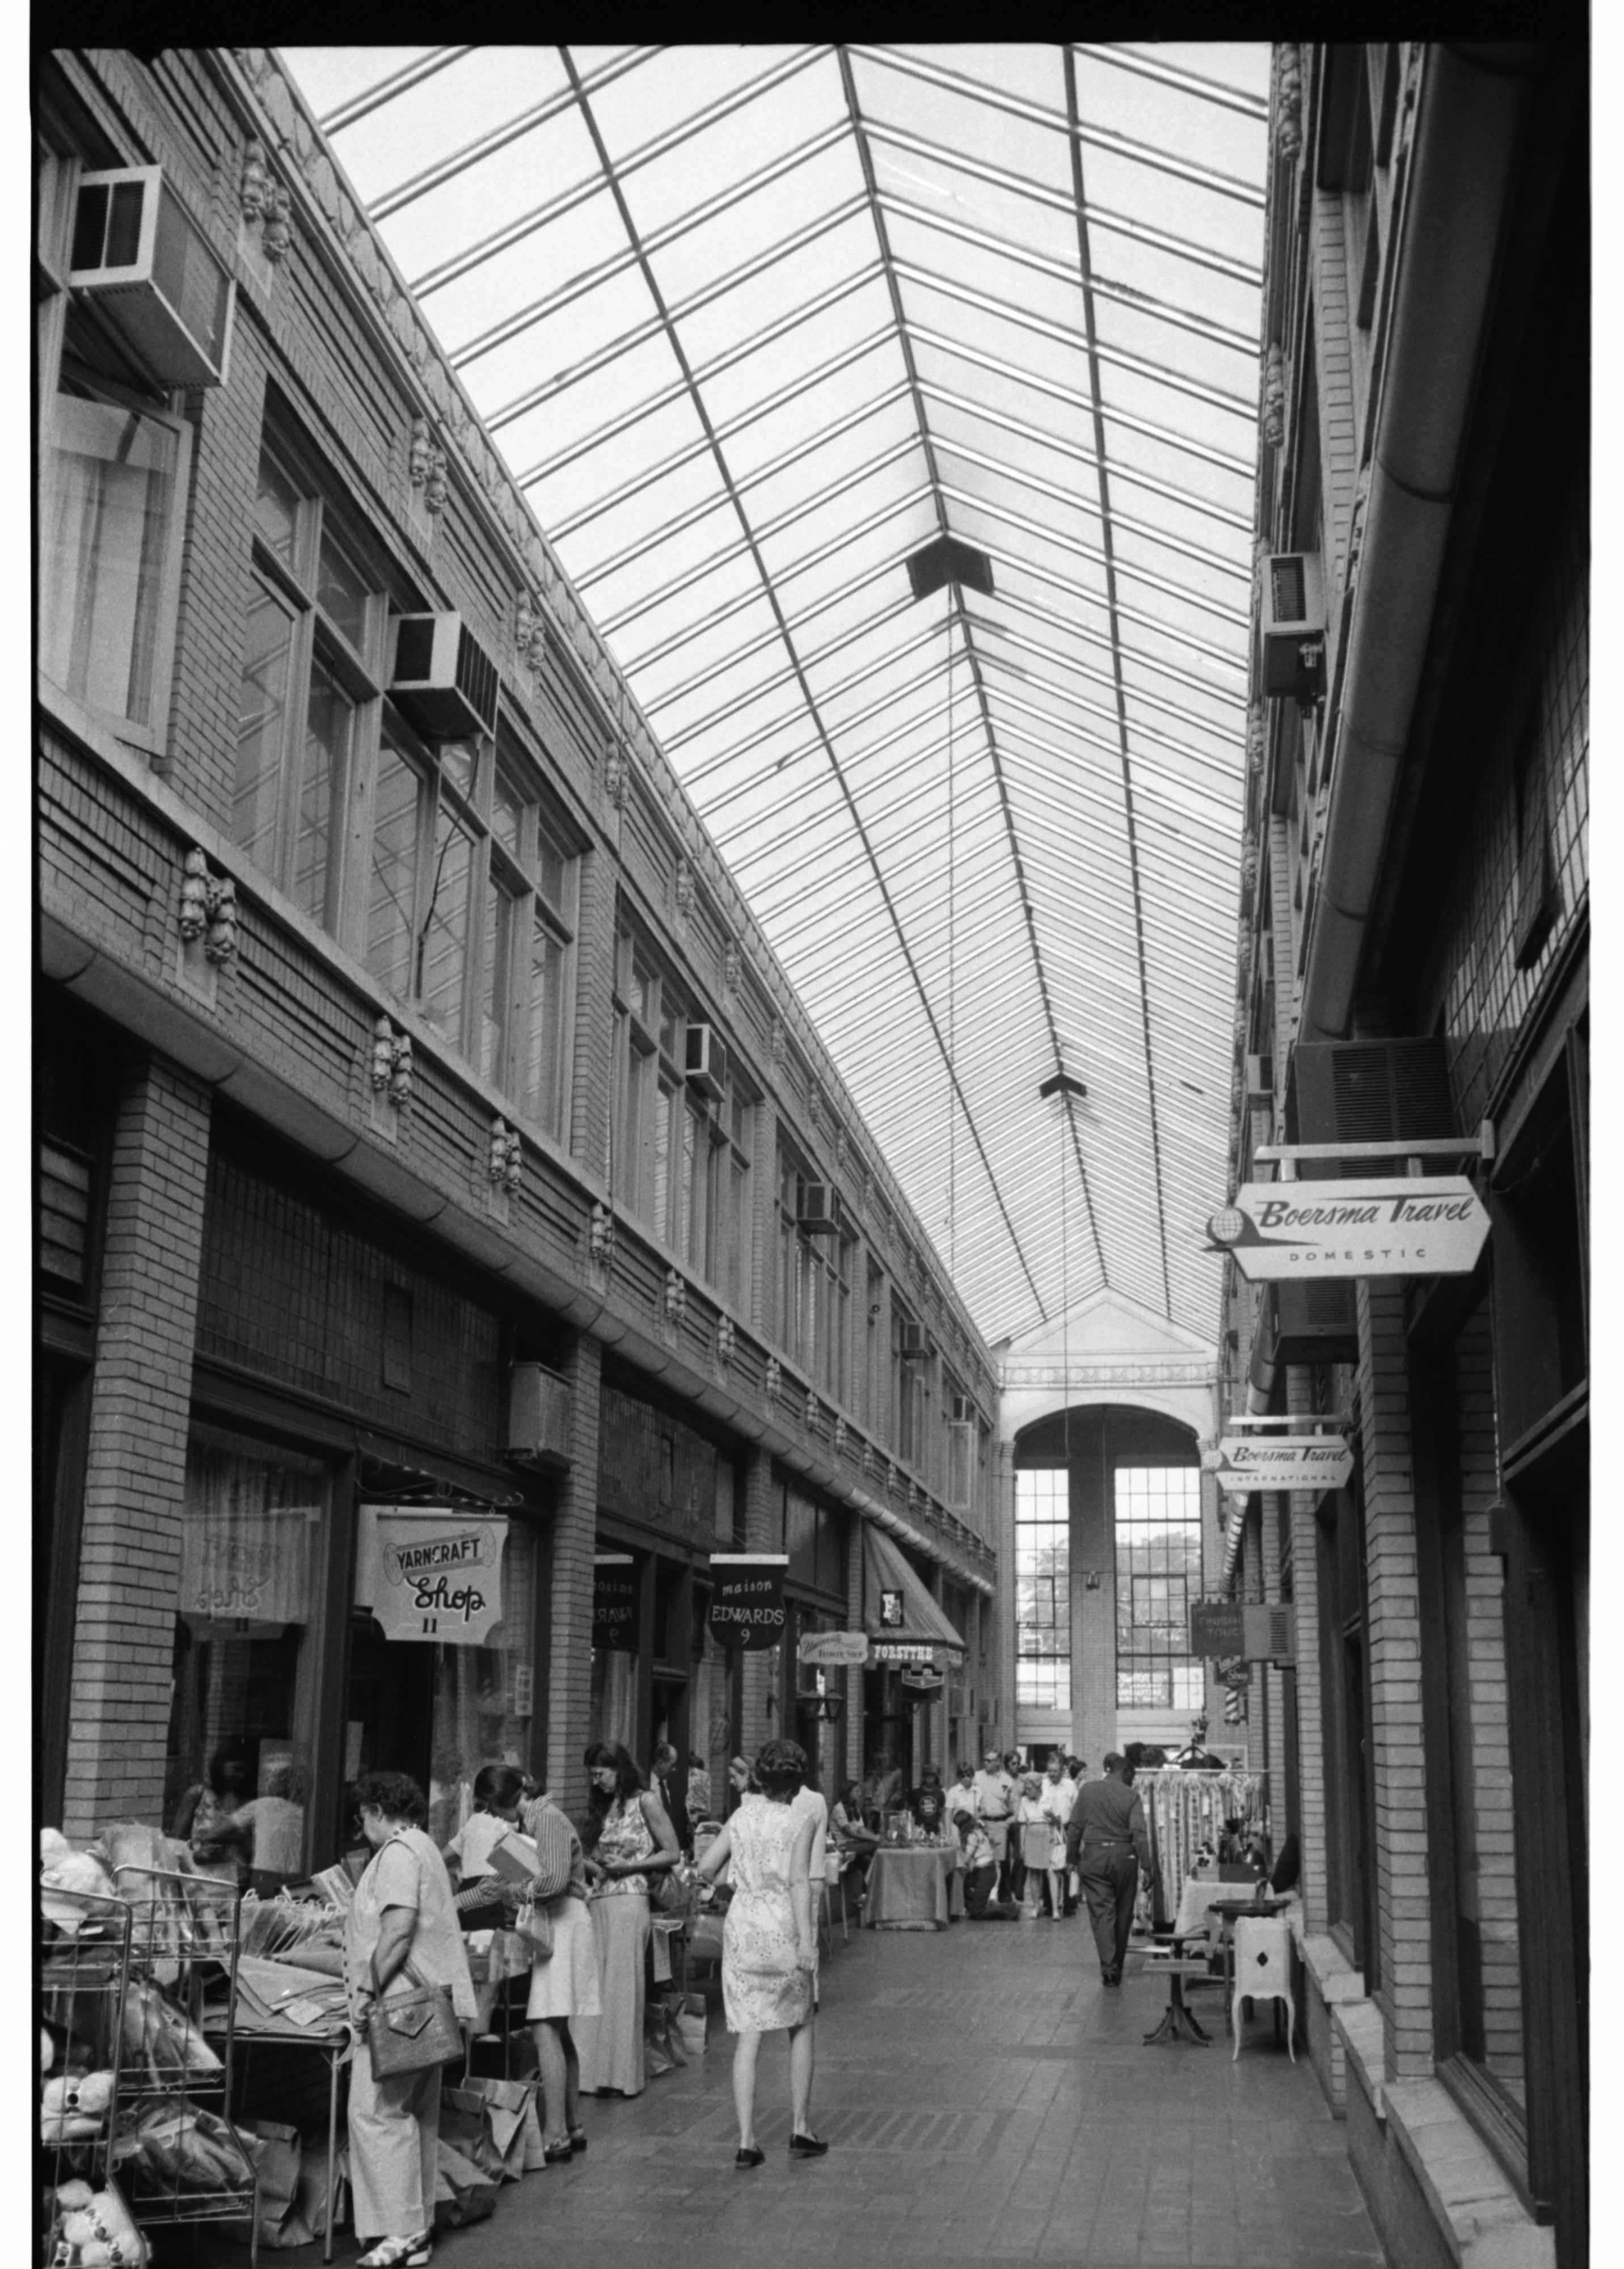 Nickels Arcade, July 28, 1974 image